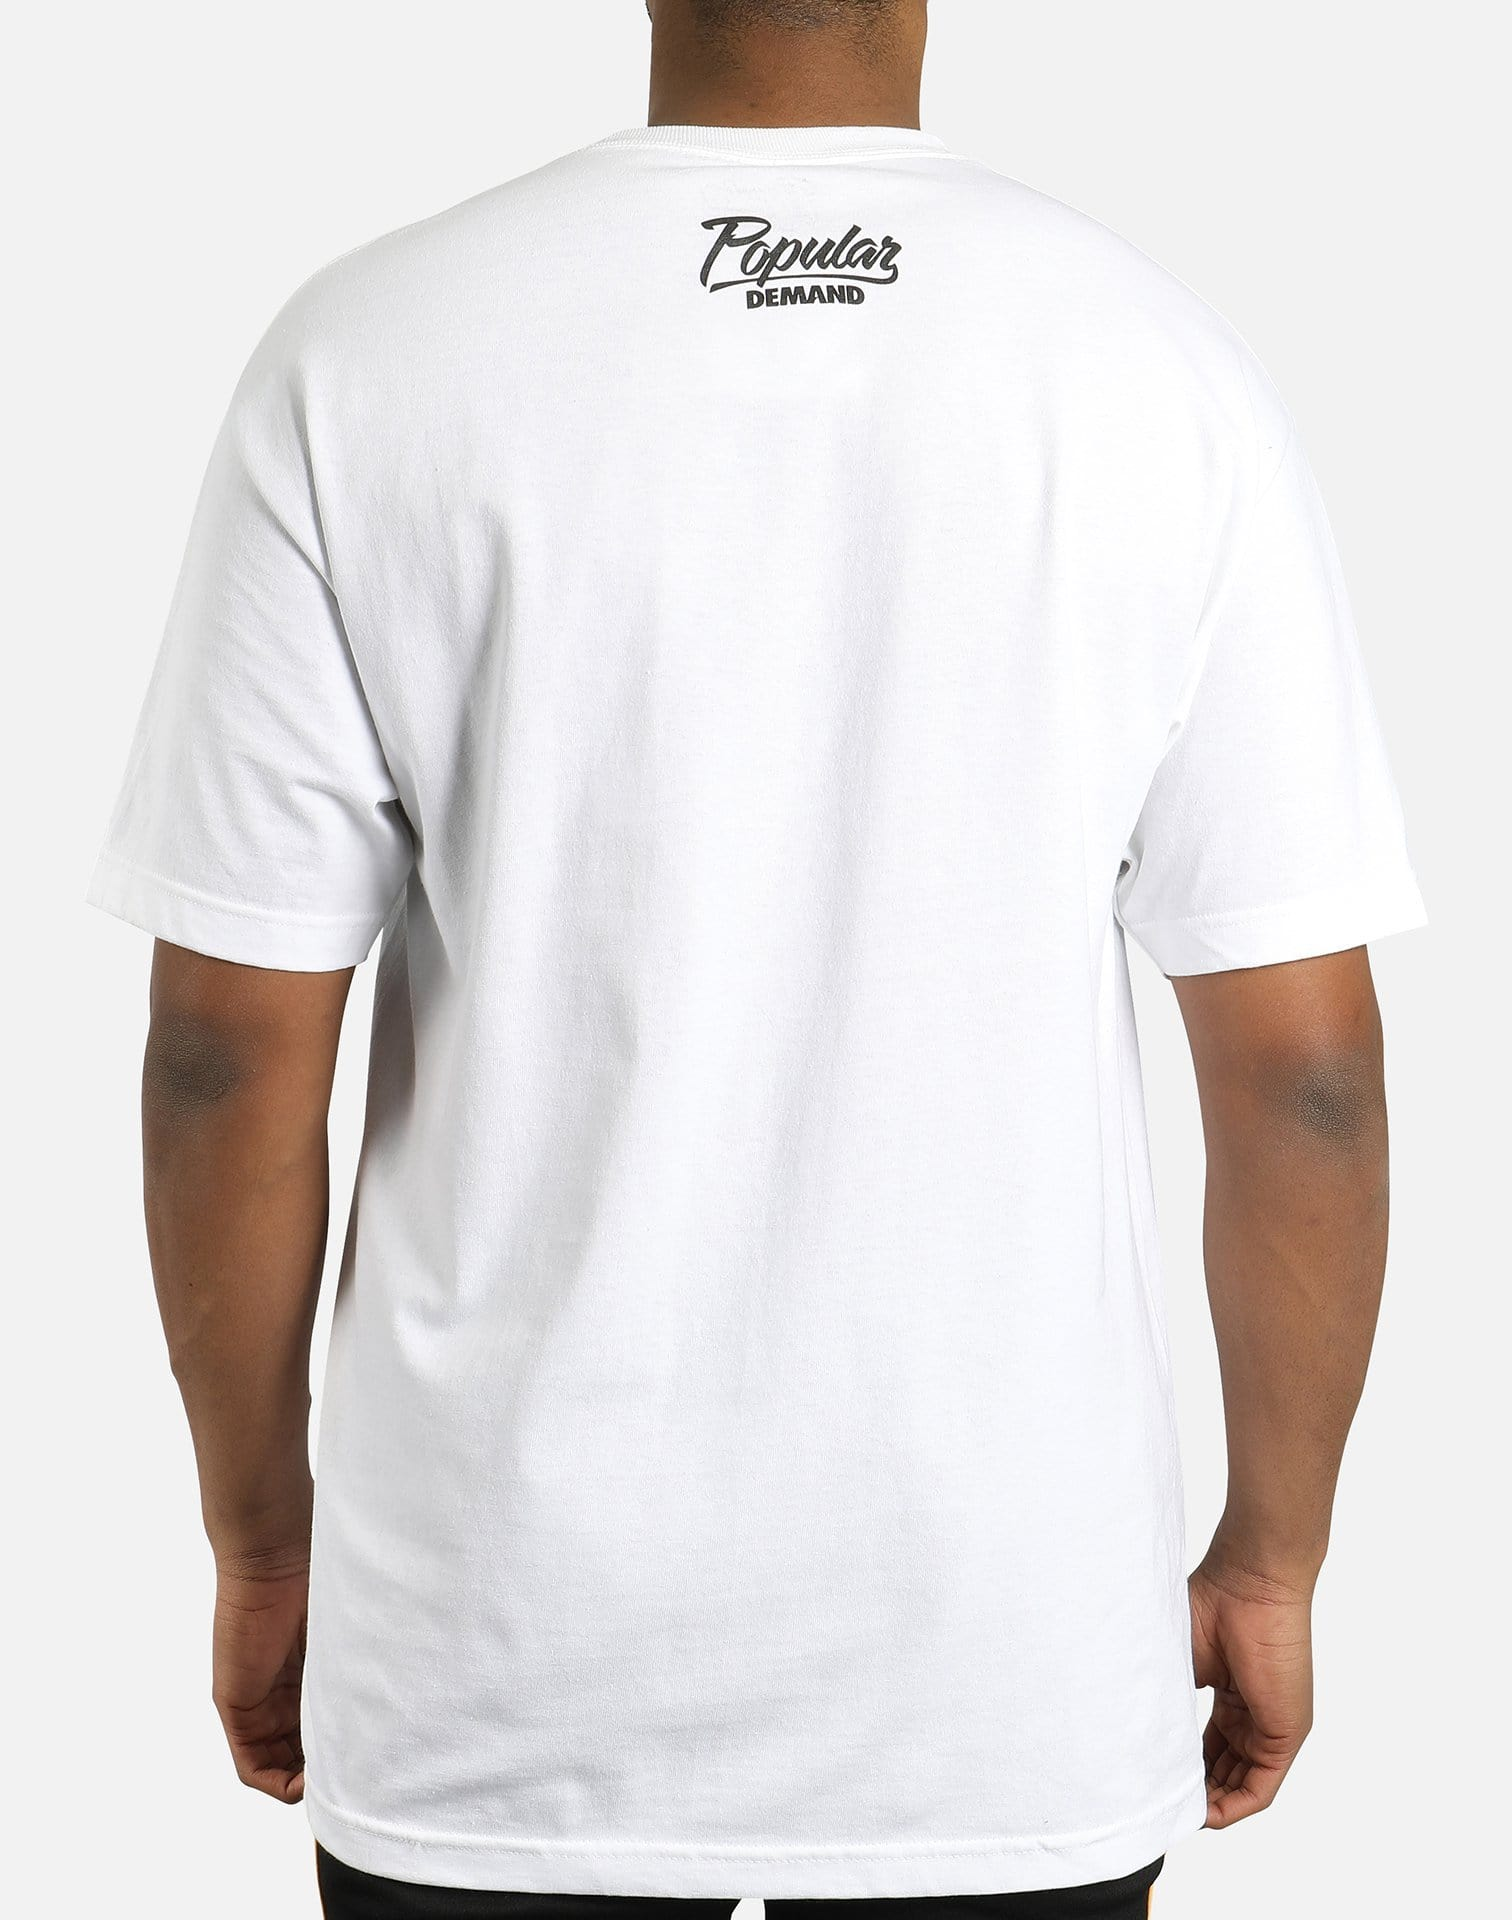 Popular Demand Inhale Tee